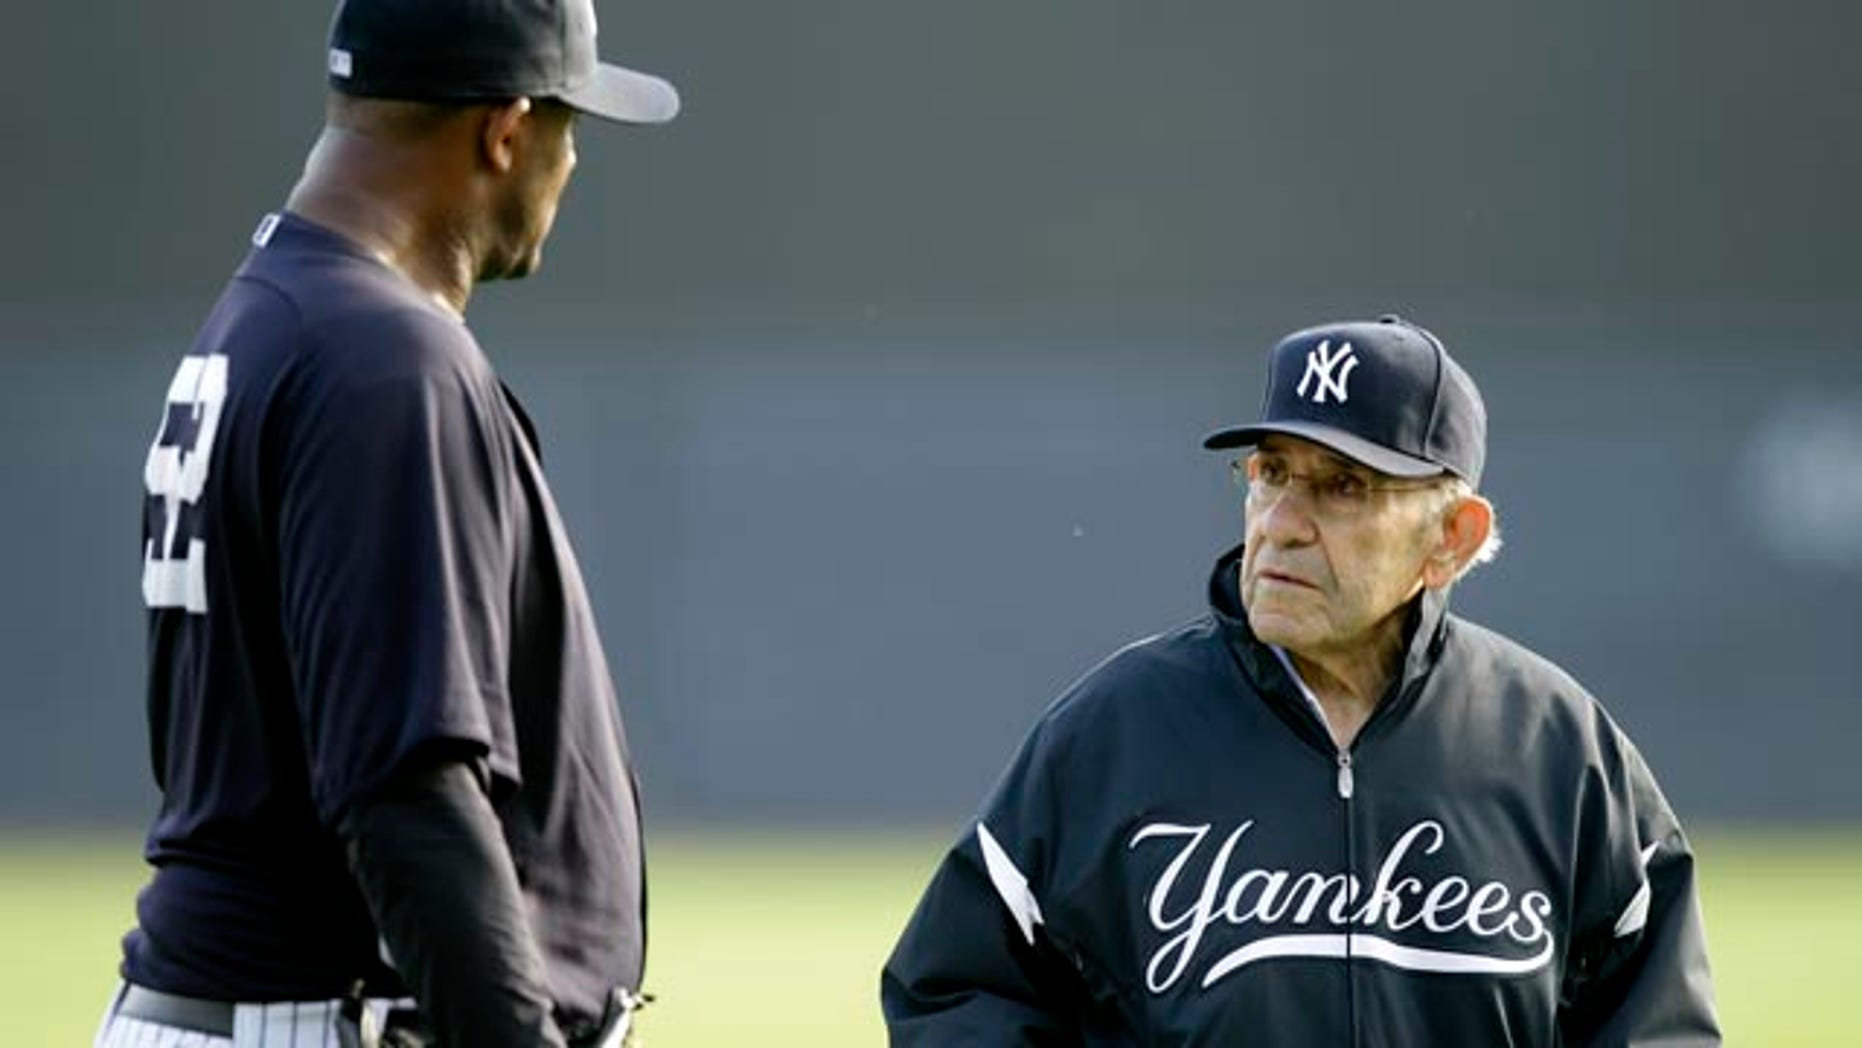 File-This Feb. 24, 2011, file photo shows New York Yankees pitcher CC Sabathia,left, talking with Yogi Berra, right, during a baseball spring training workout at Steinbrenner Field in Tampa, Fla. (AP Photo/Charlie Neibergall, File)